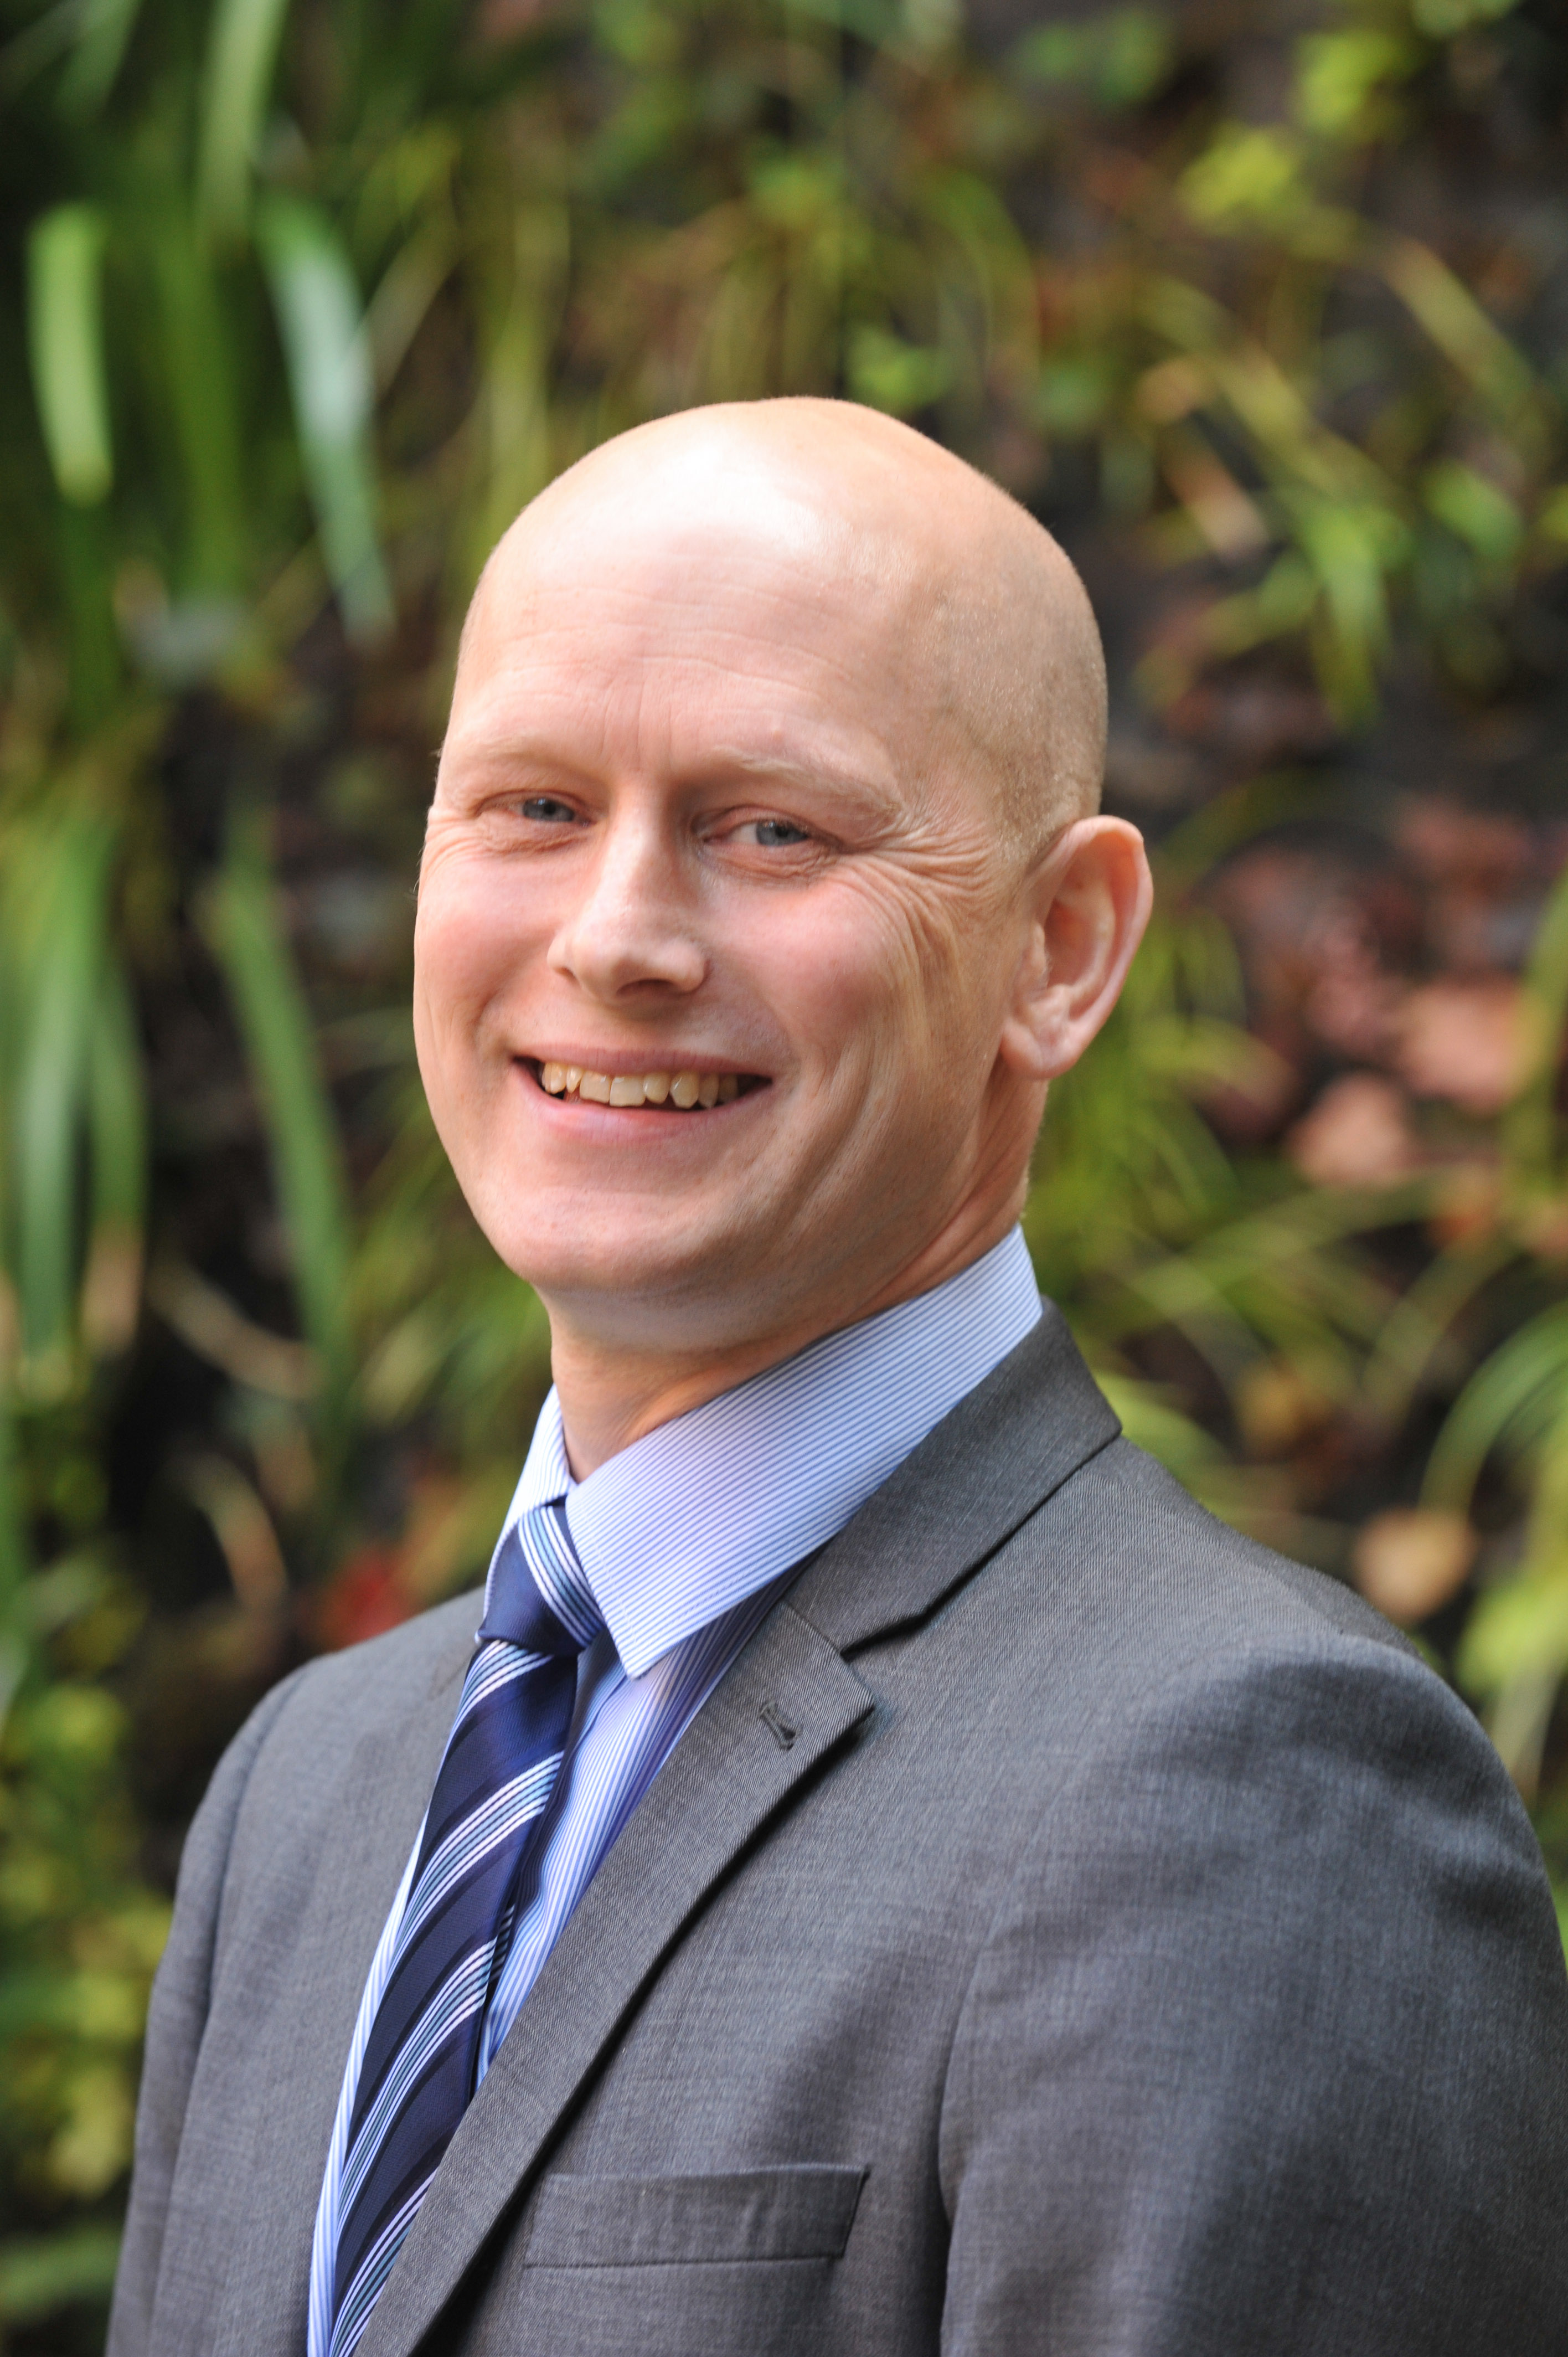 Dr Nick Watkins, Assistant Director of Research and Development